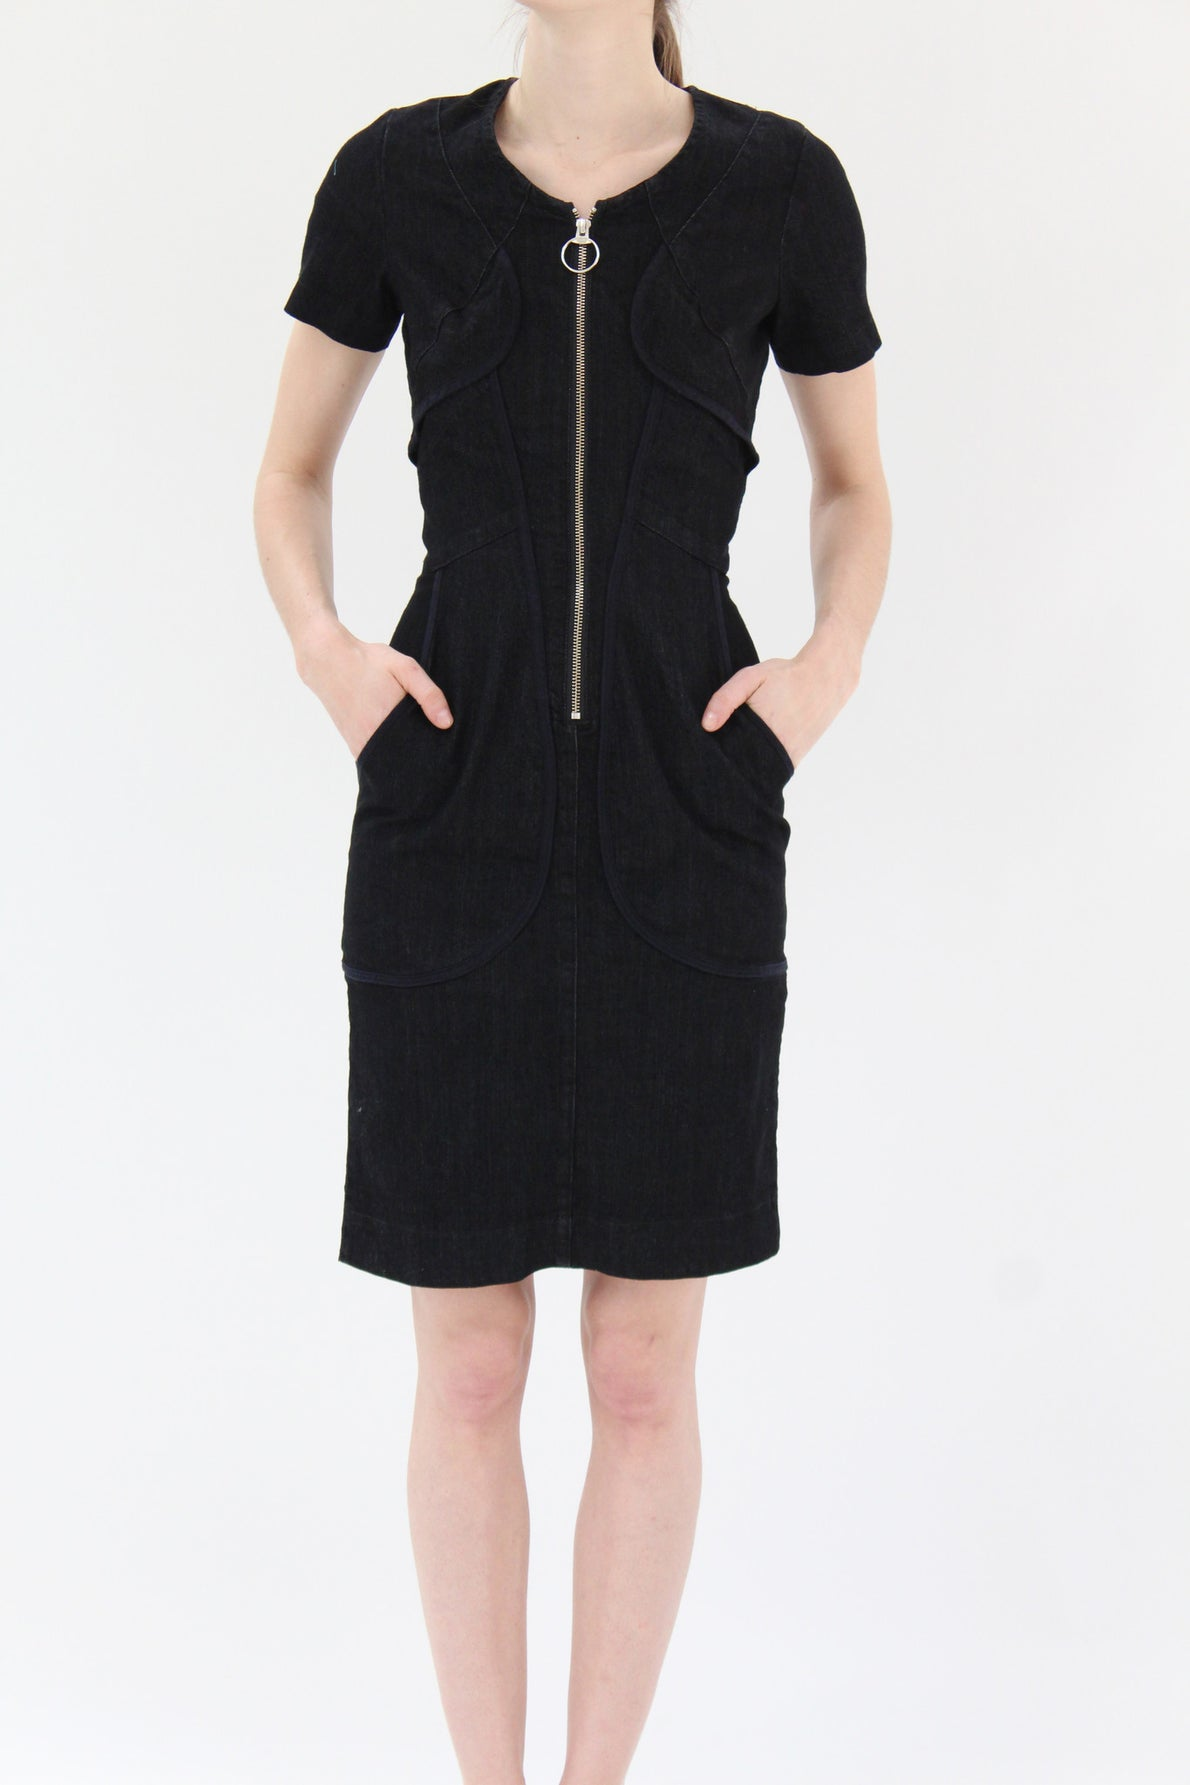 Prairie Underground Harness Dress Black / Beklina